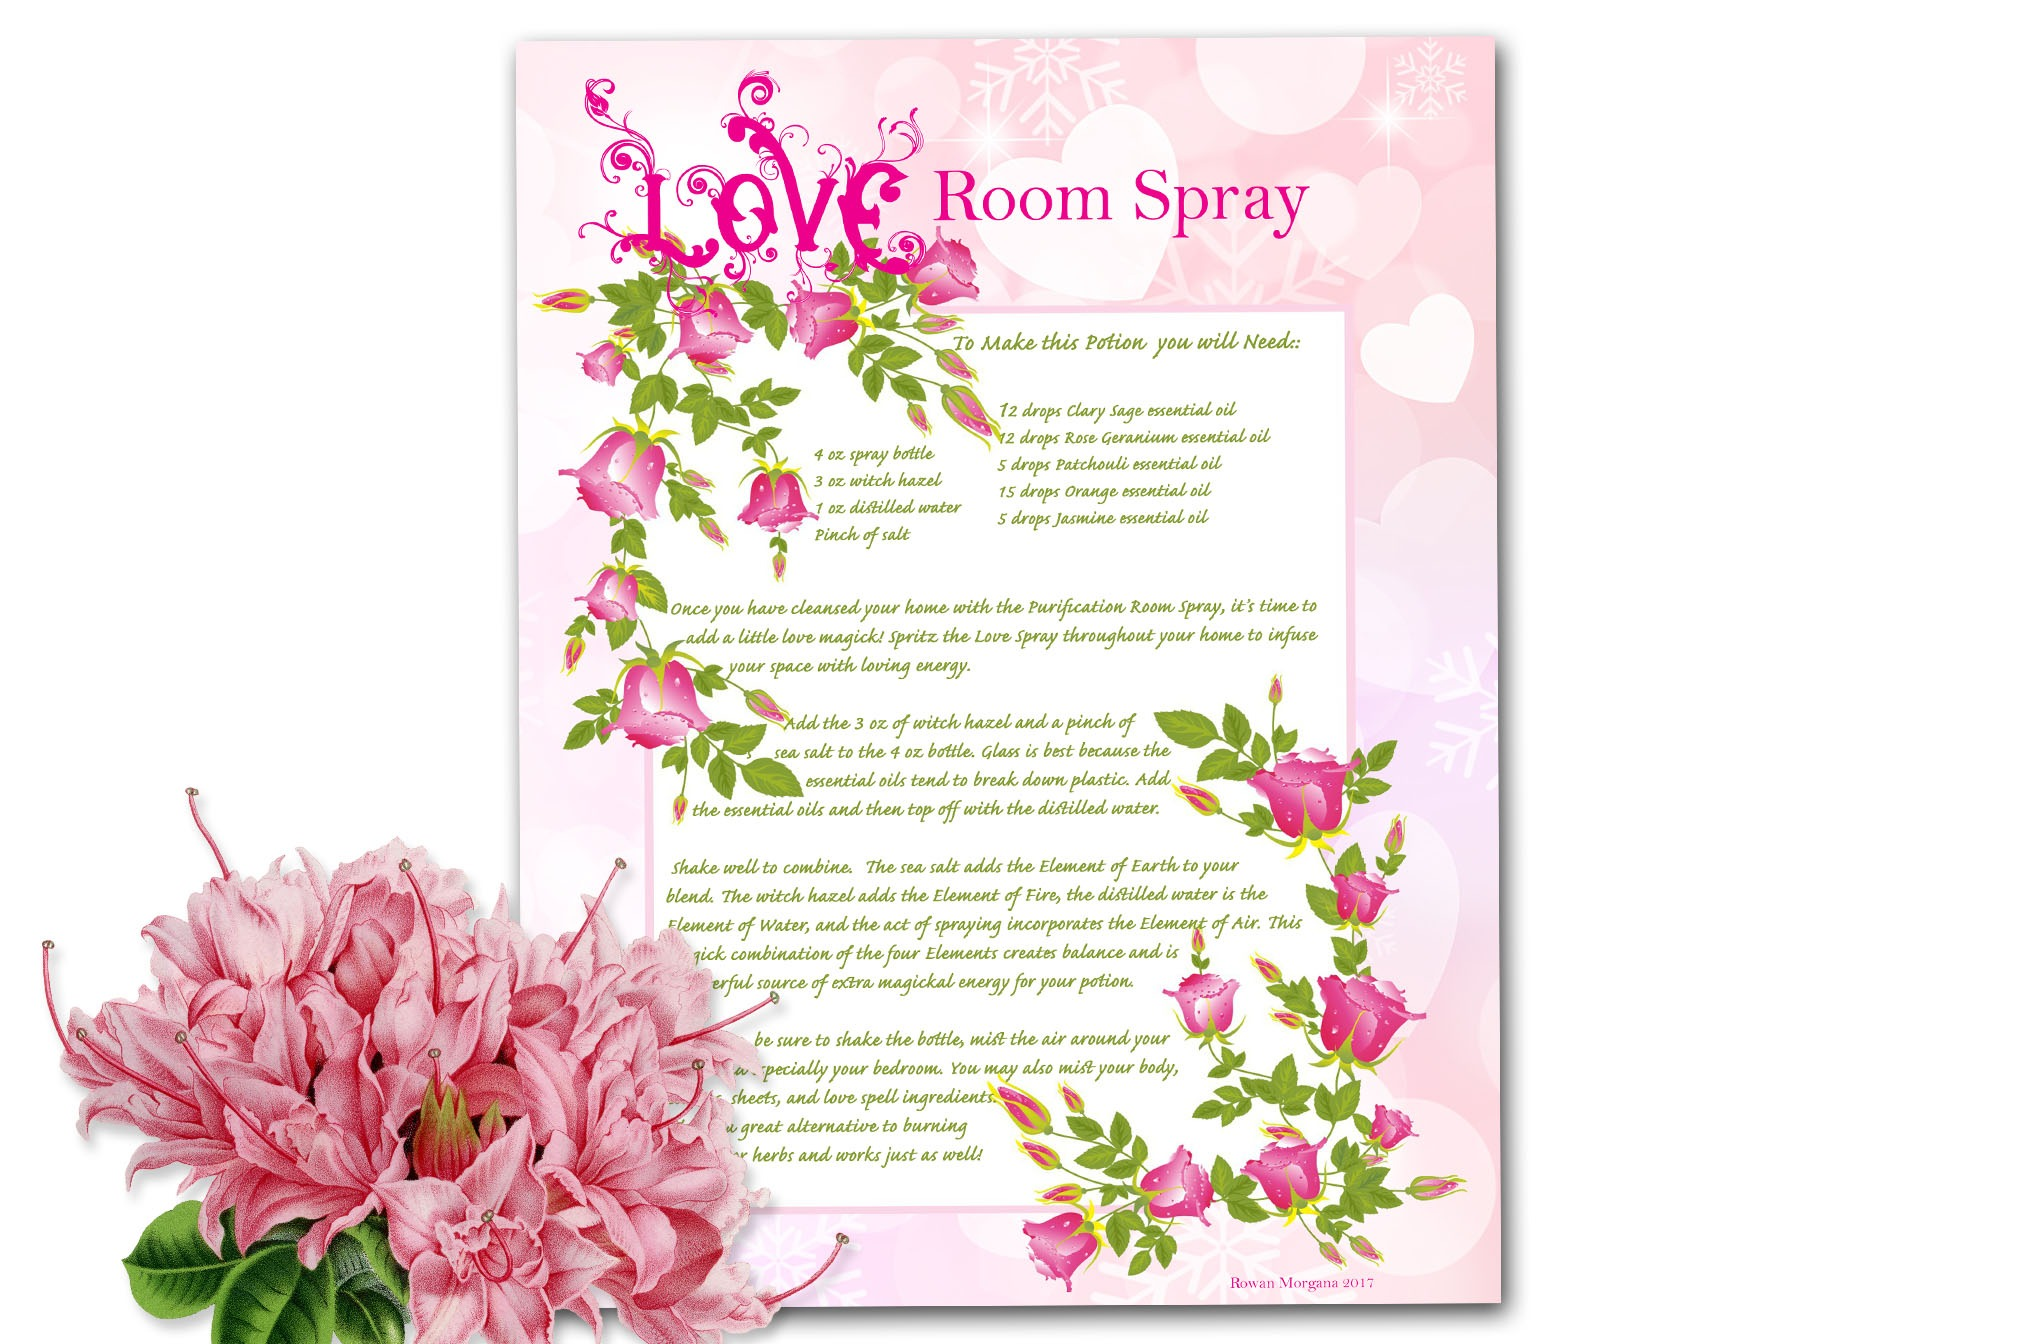 LOVE ROOM SPRAY